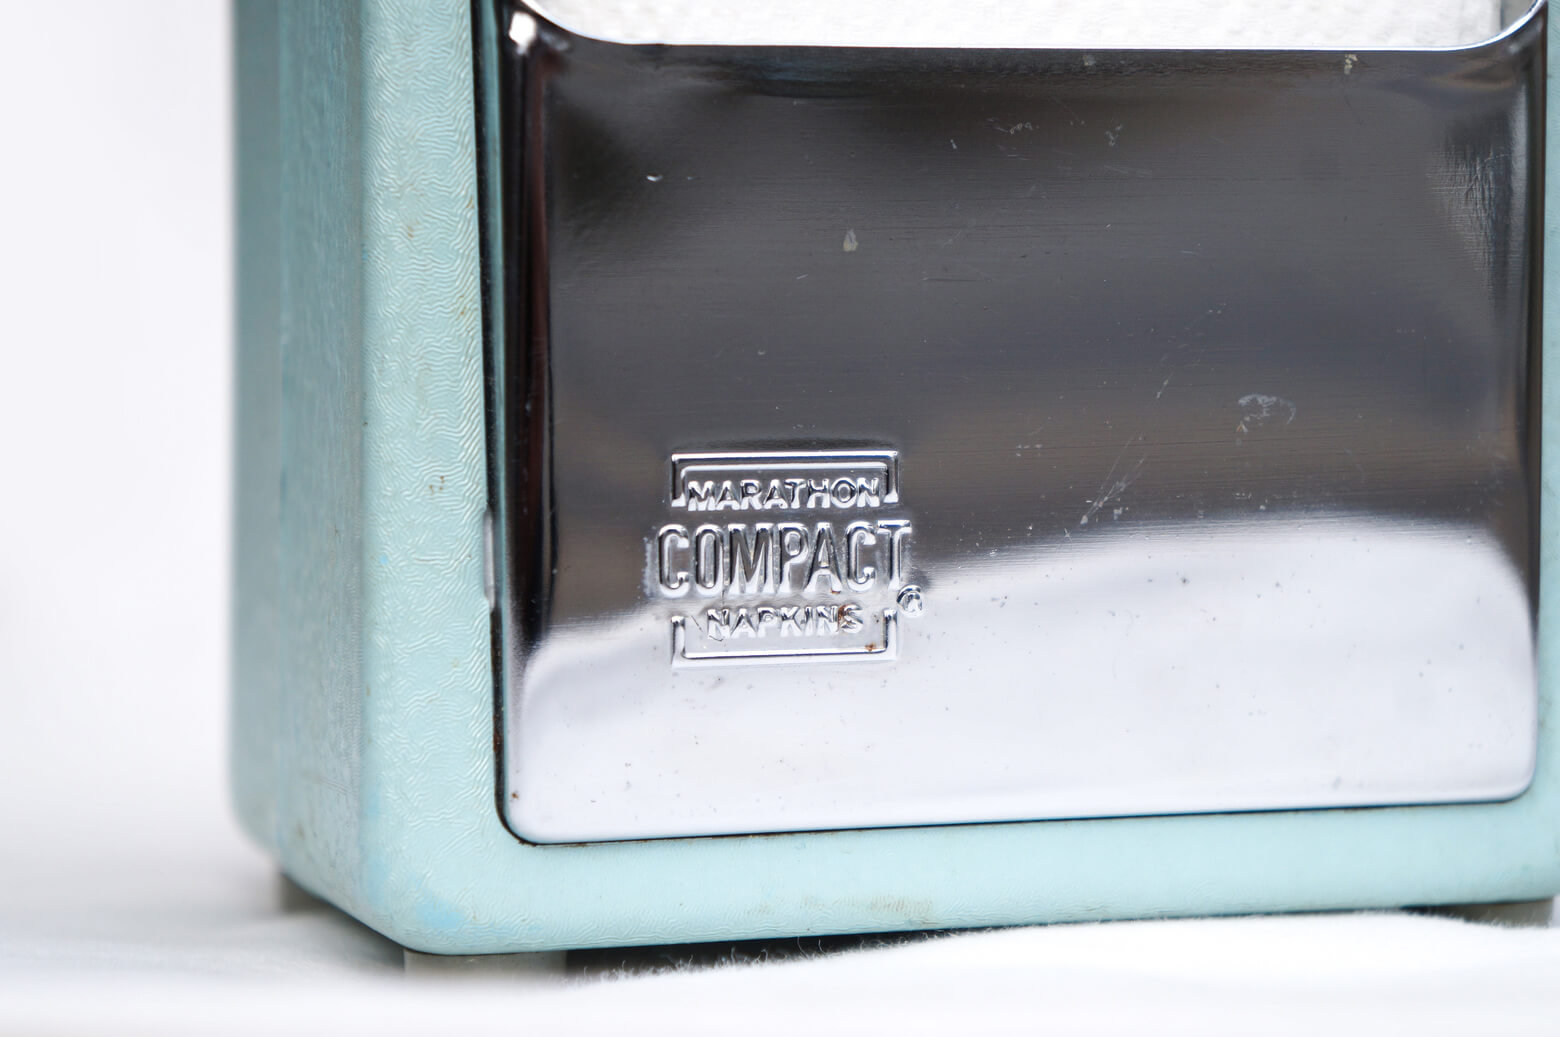 AMERICAN CAN COMPANY Vintage Marathon Compact Napkin Holder/ヴィンテージ ナプキン ホルダー アメリカ レトロ